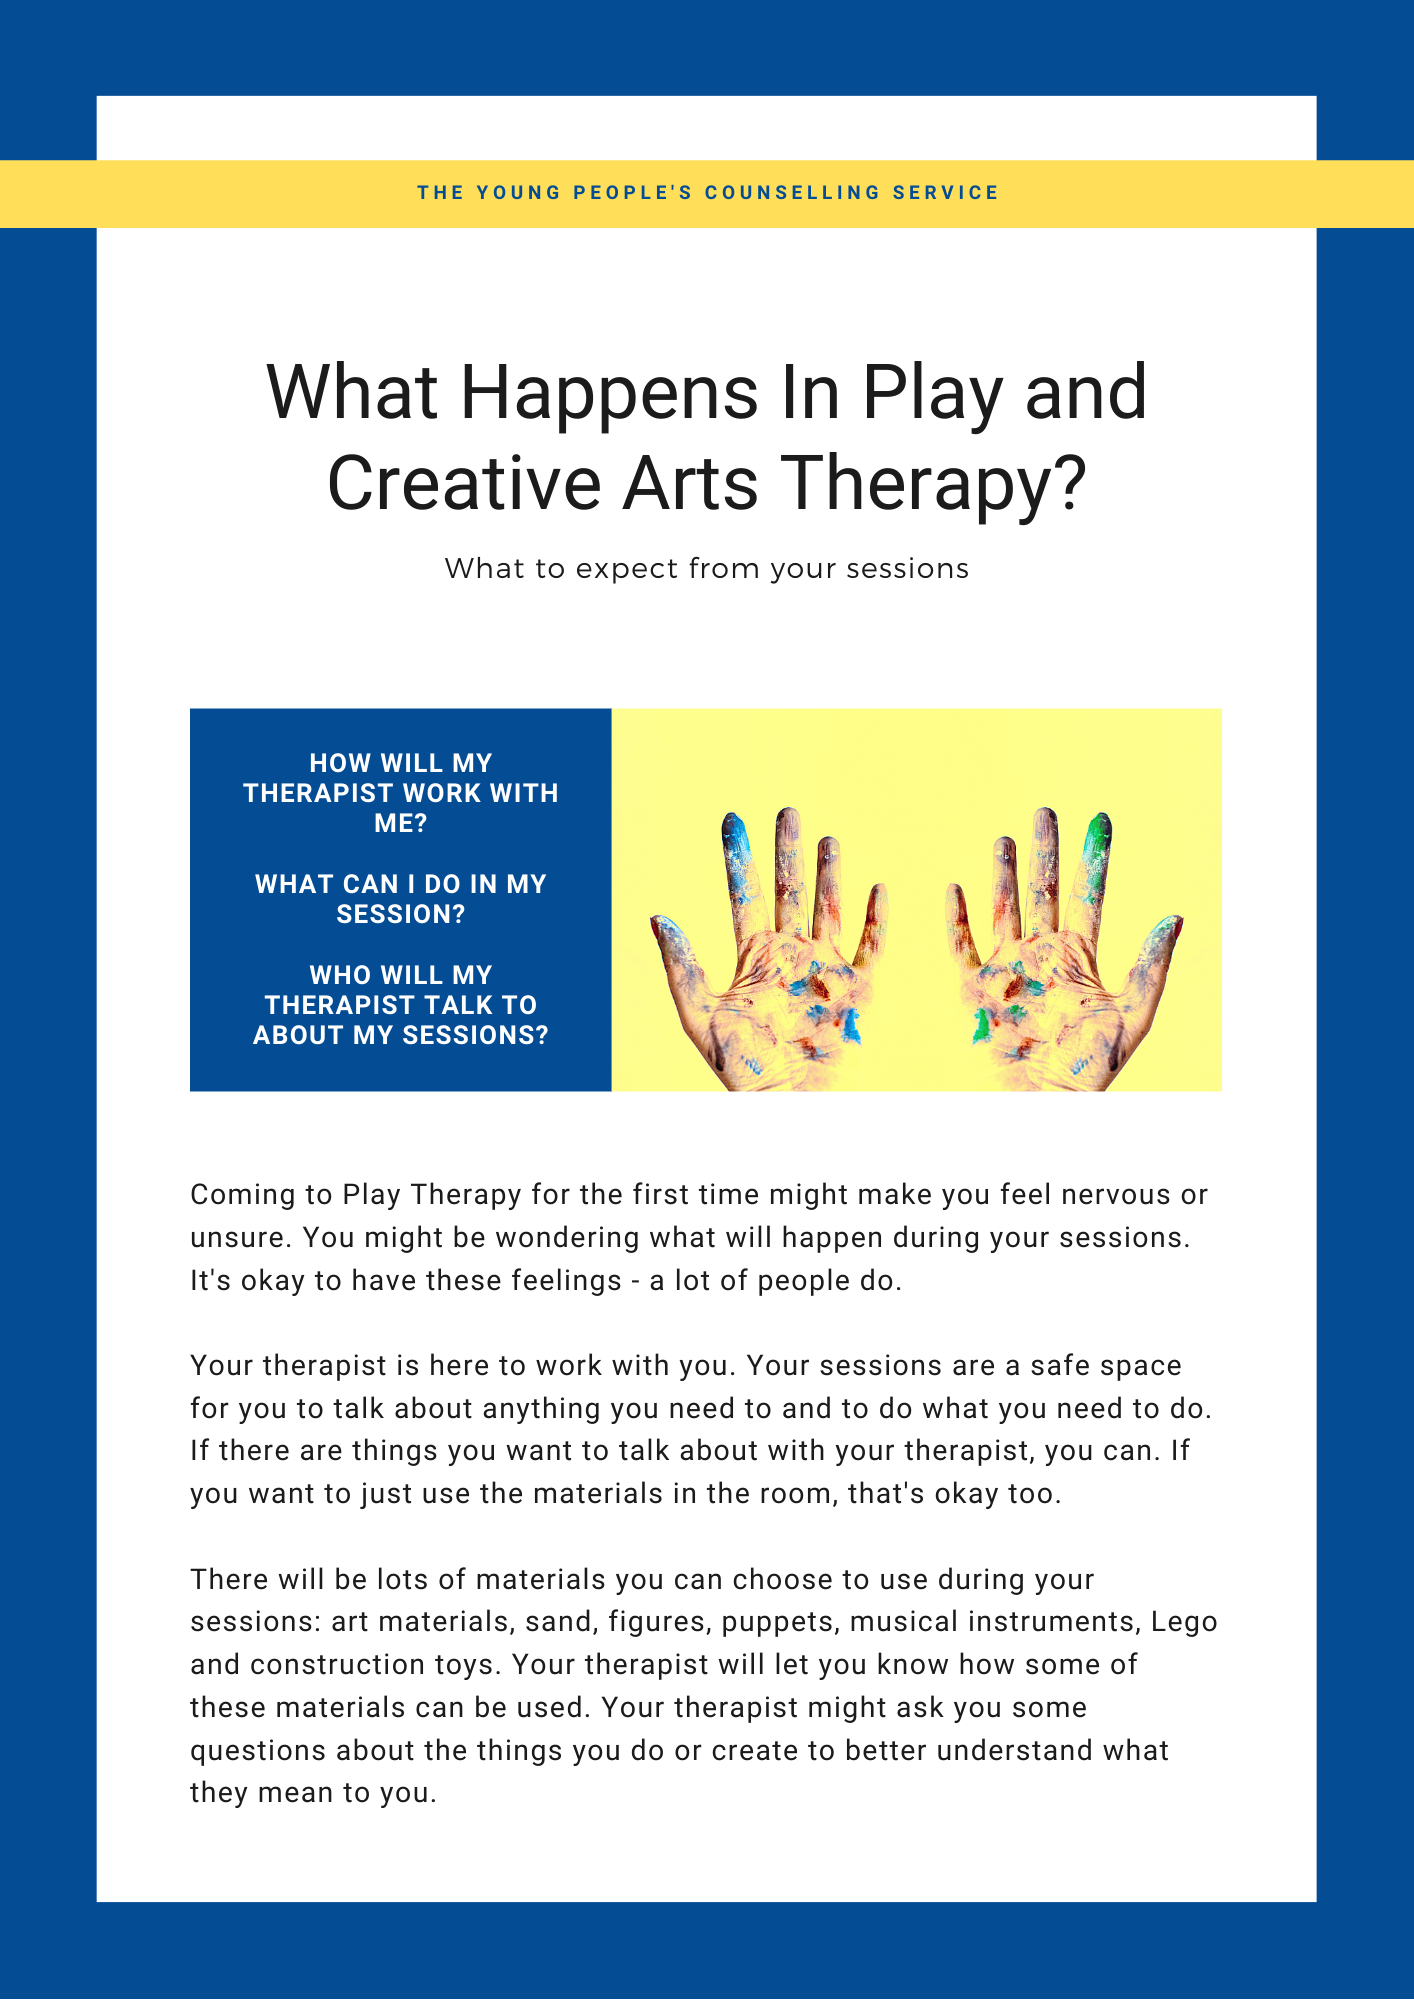 What Happens In Play and Creative Arts Therapy?